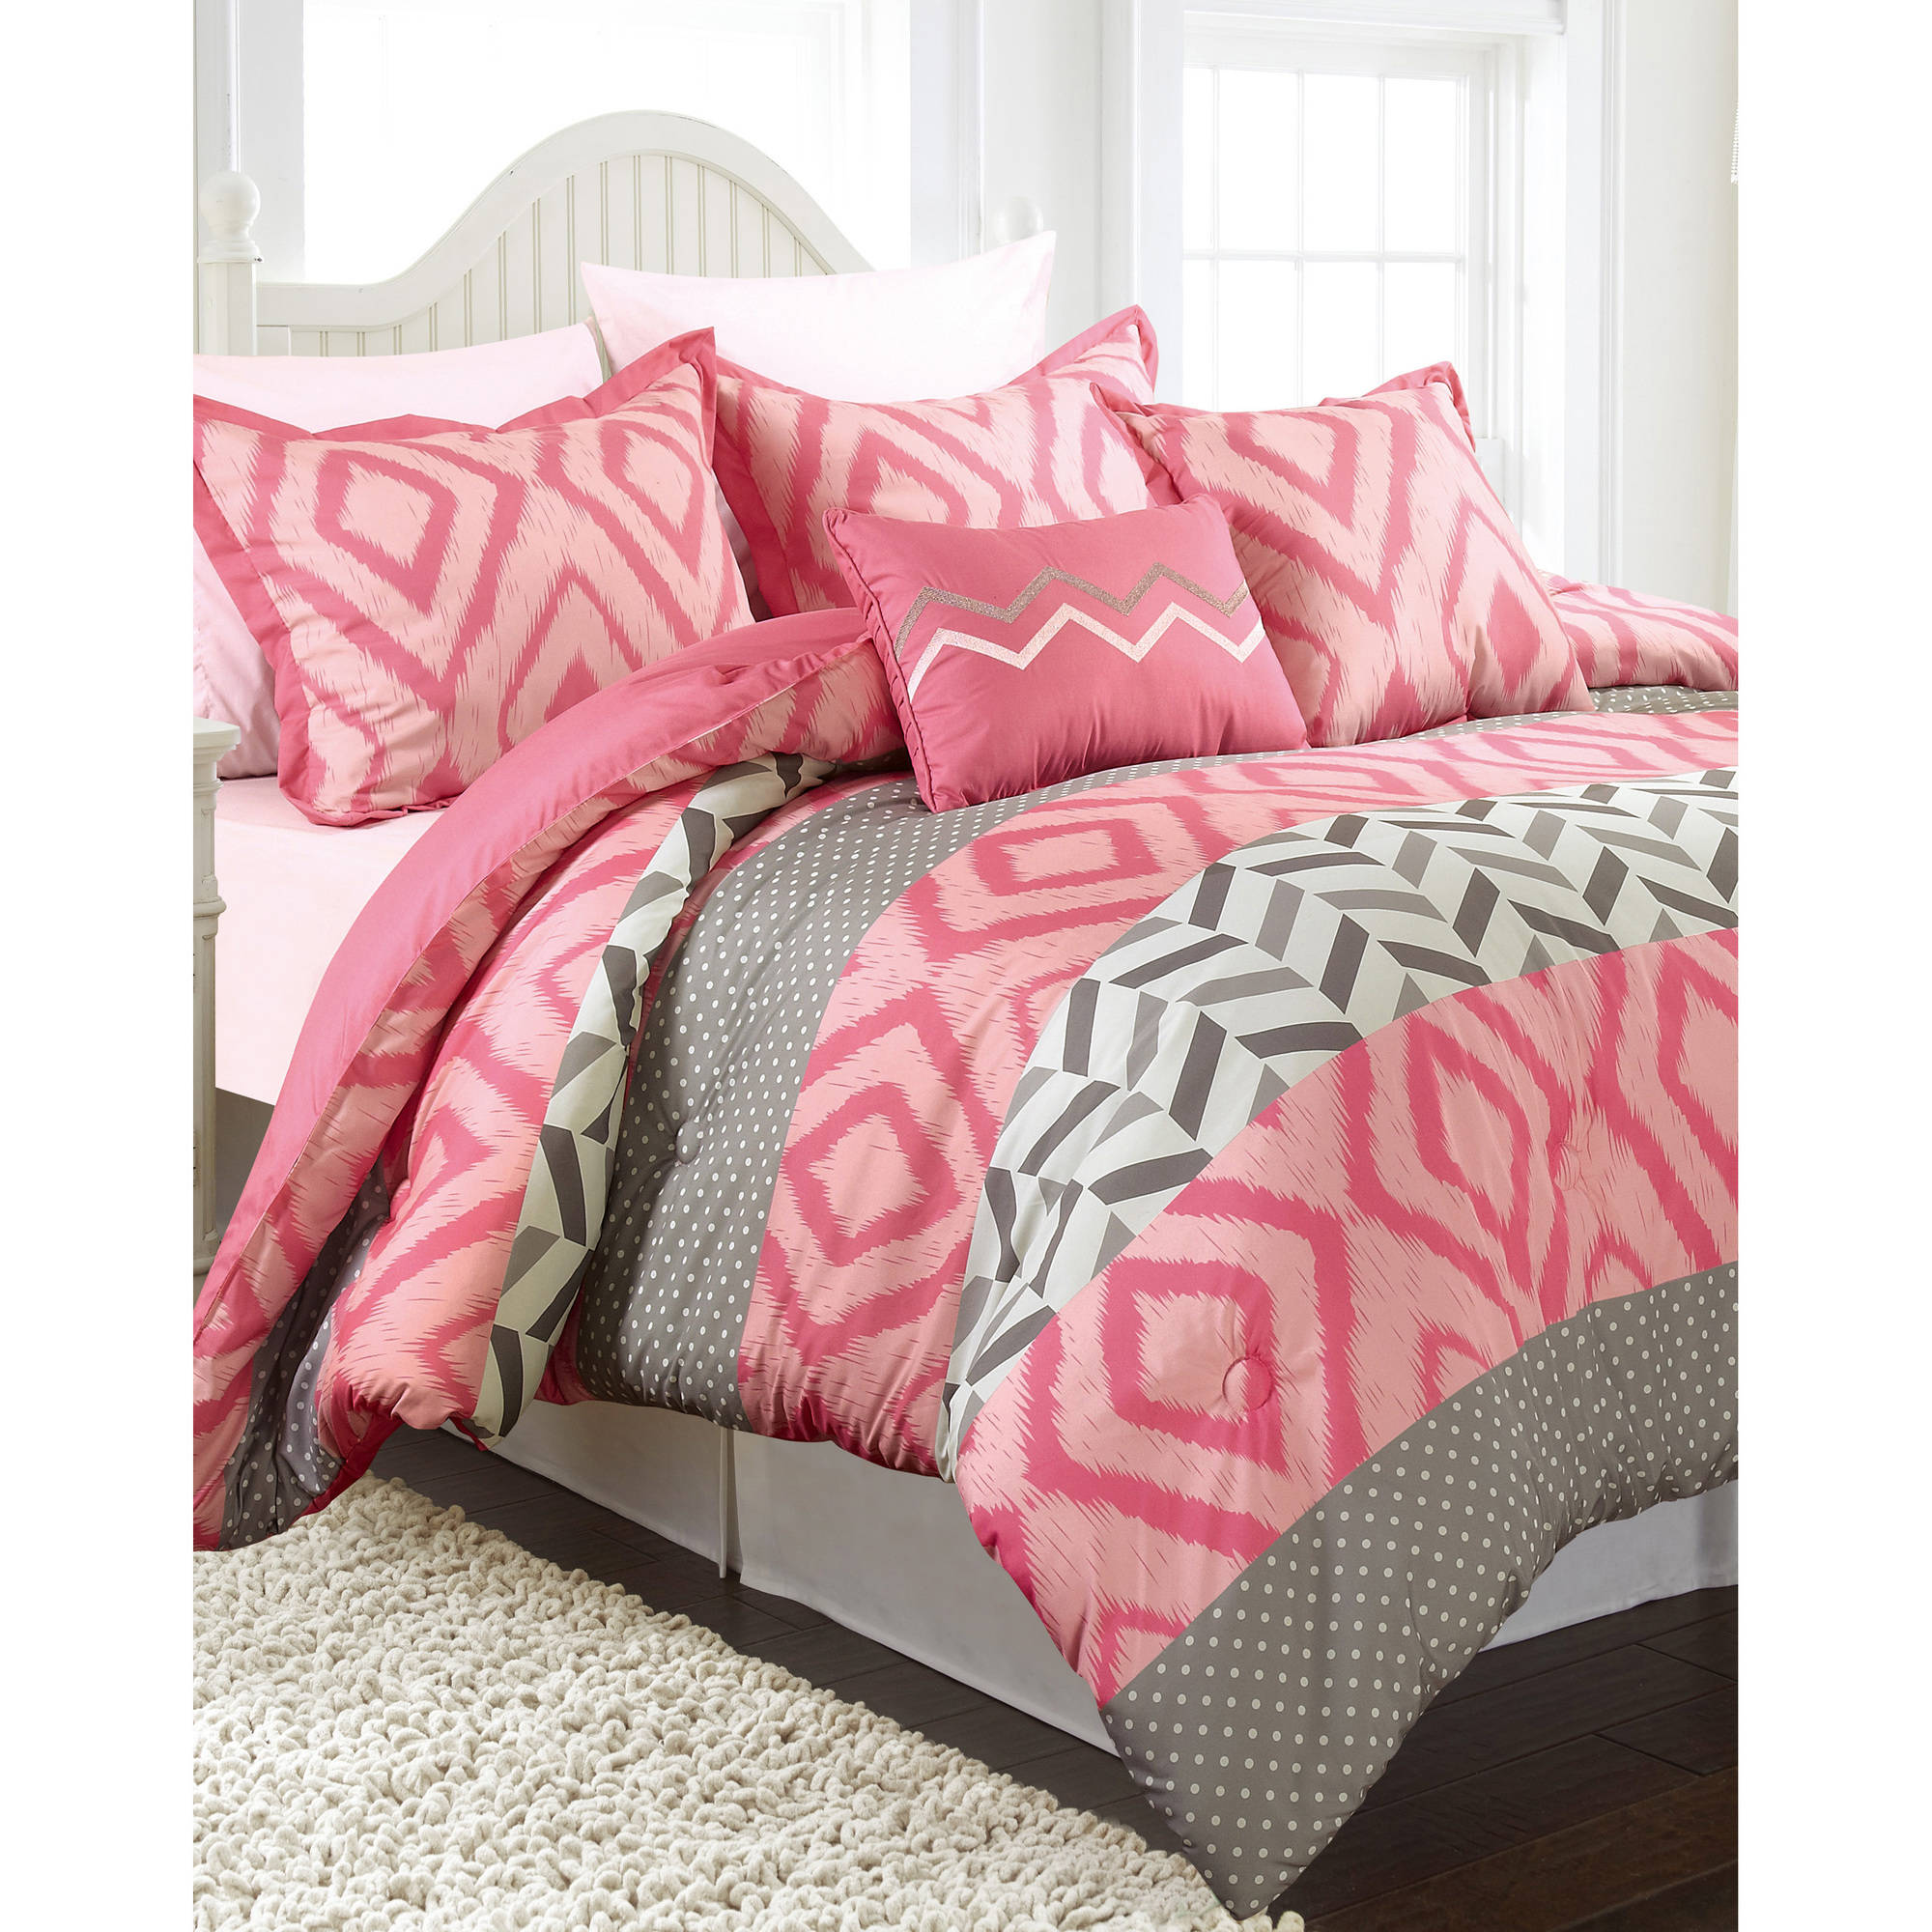 Maddy 4-Piece Bedding Comforter Set